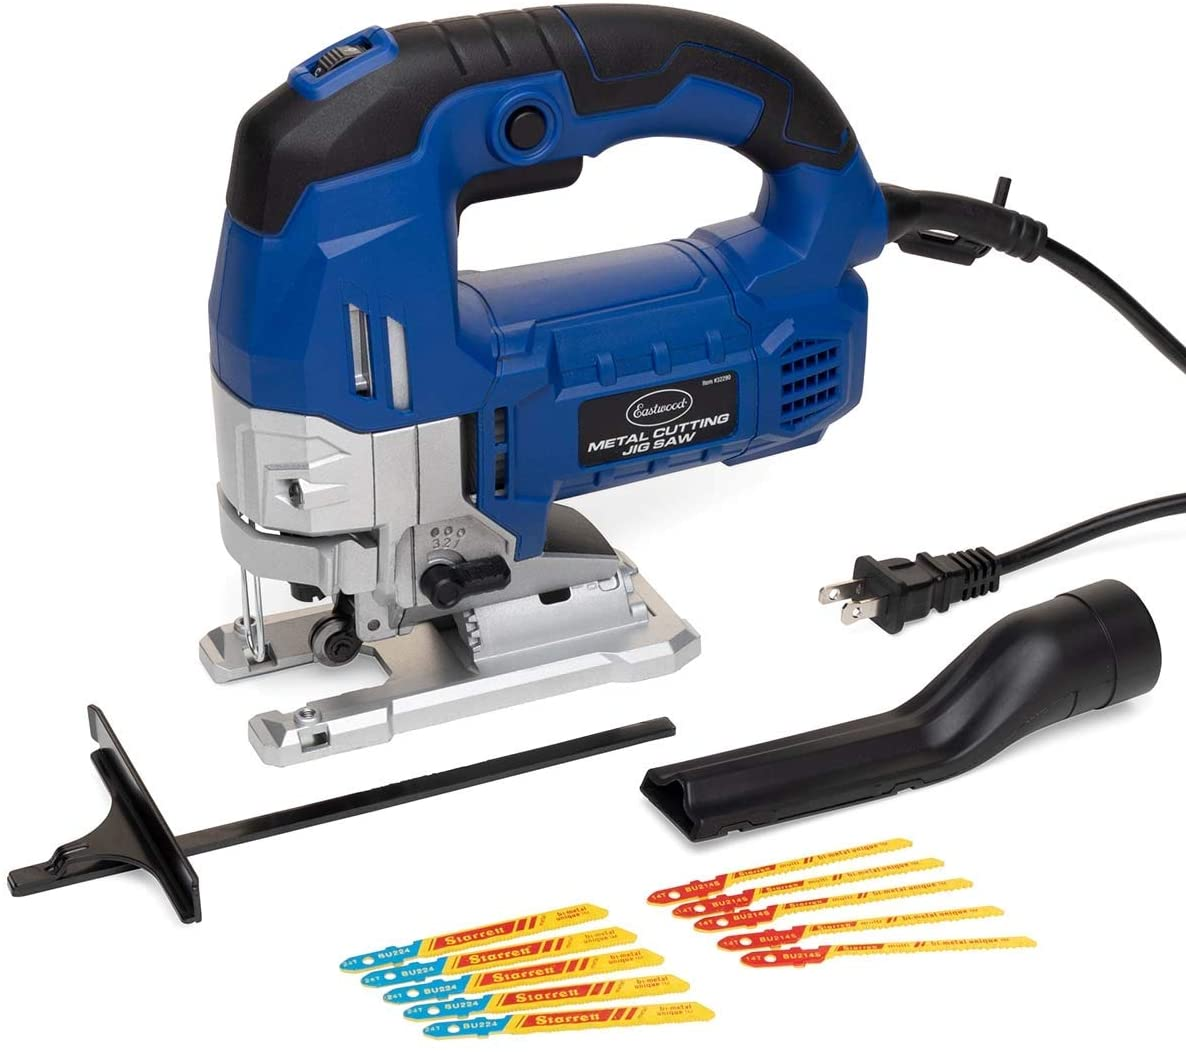 Eastwood Metal Cutting Jig Saw with 4 Position Orbital Blade Motion Control